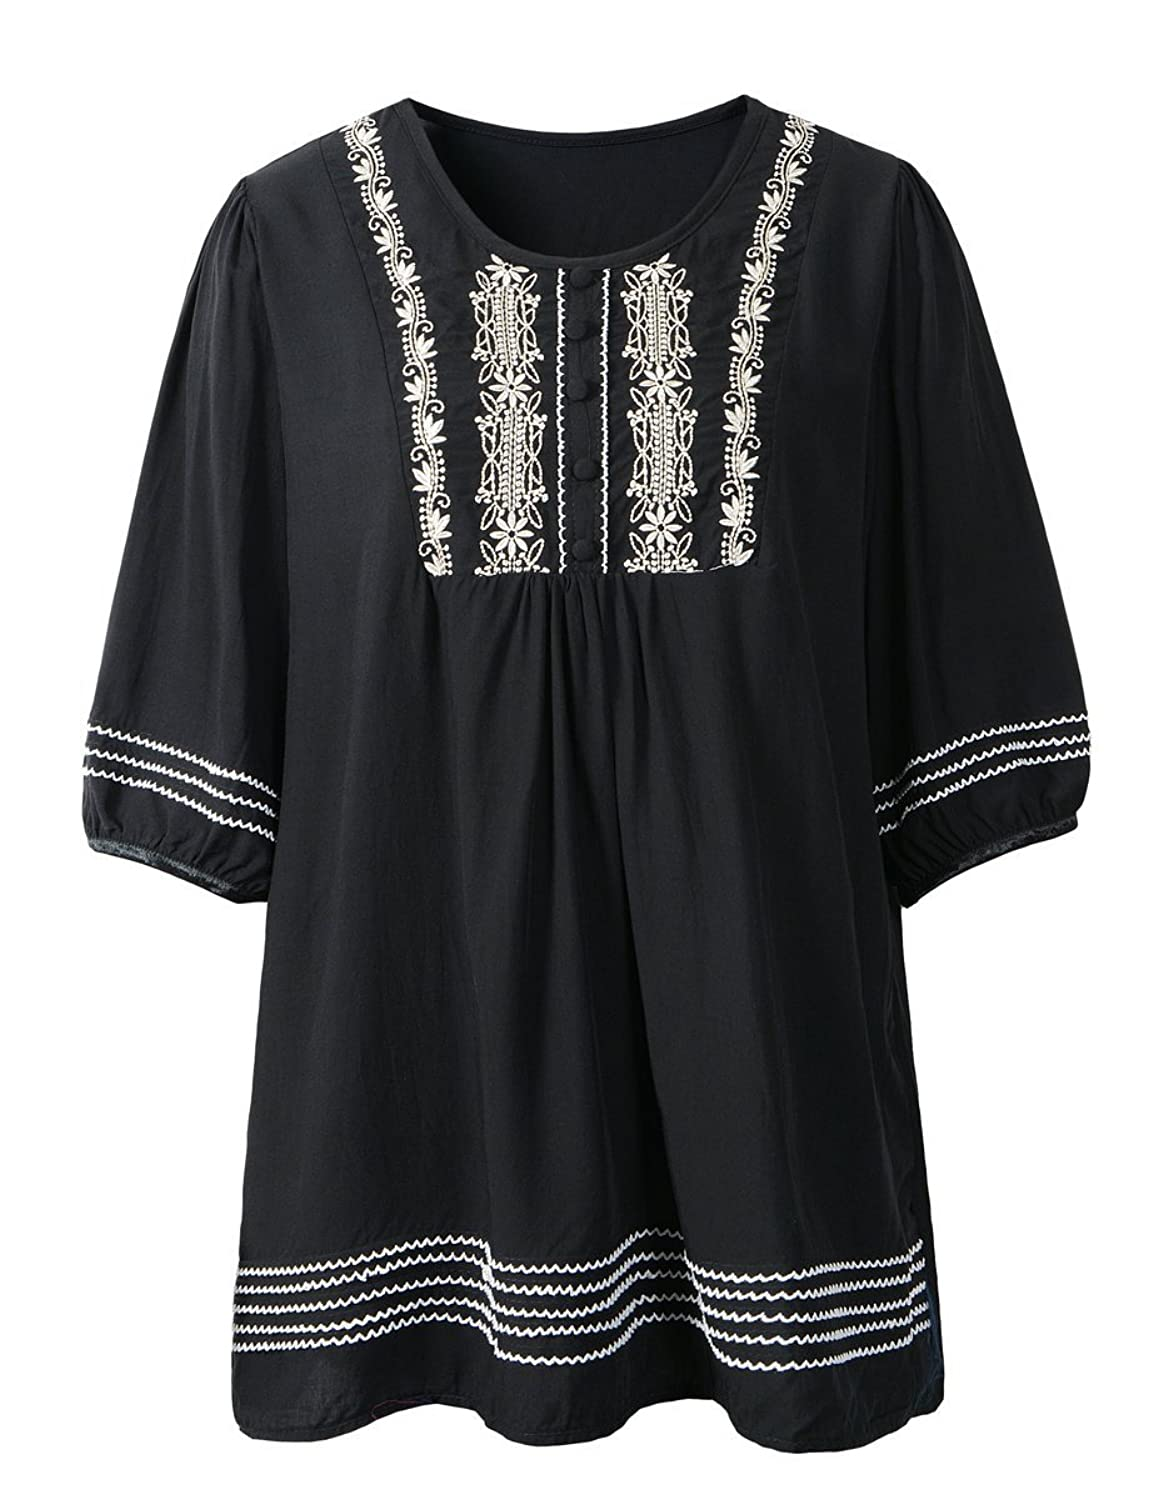 lanmo women peasant top summer blouse flower embroidered shirt lanmo women peasant top summer blouse flower embroidered shirt one size us 10 12 b black at amazon women s clothing store